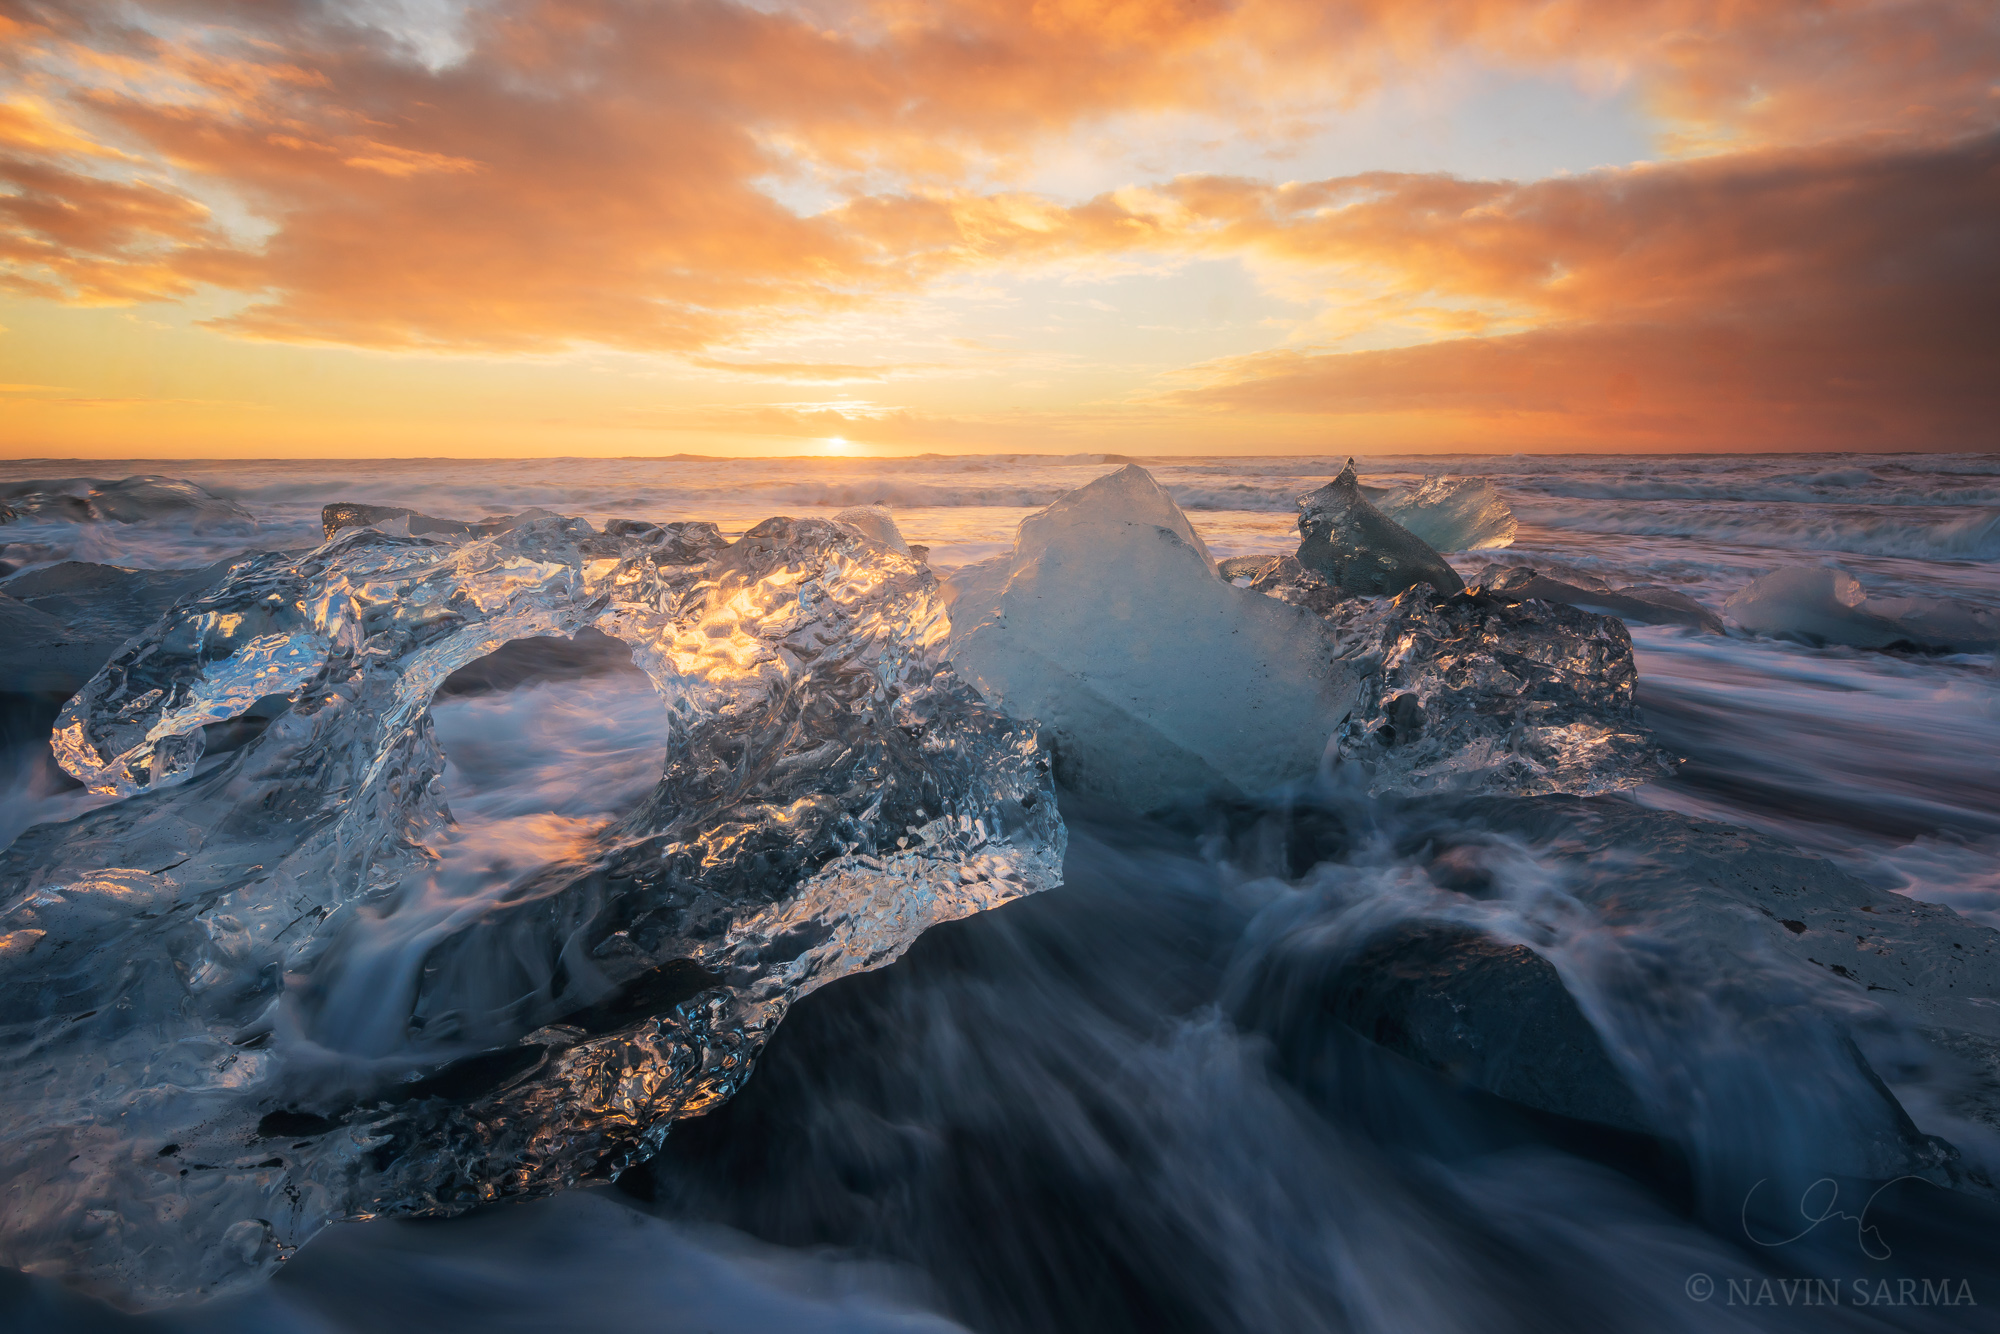 Being constantly barraged by water, Icebergs form beautiful shapes during a gorgeous sunrise at the black sand beach